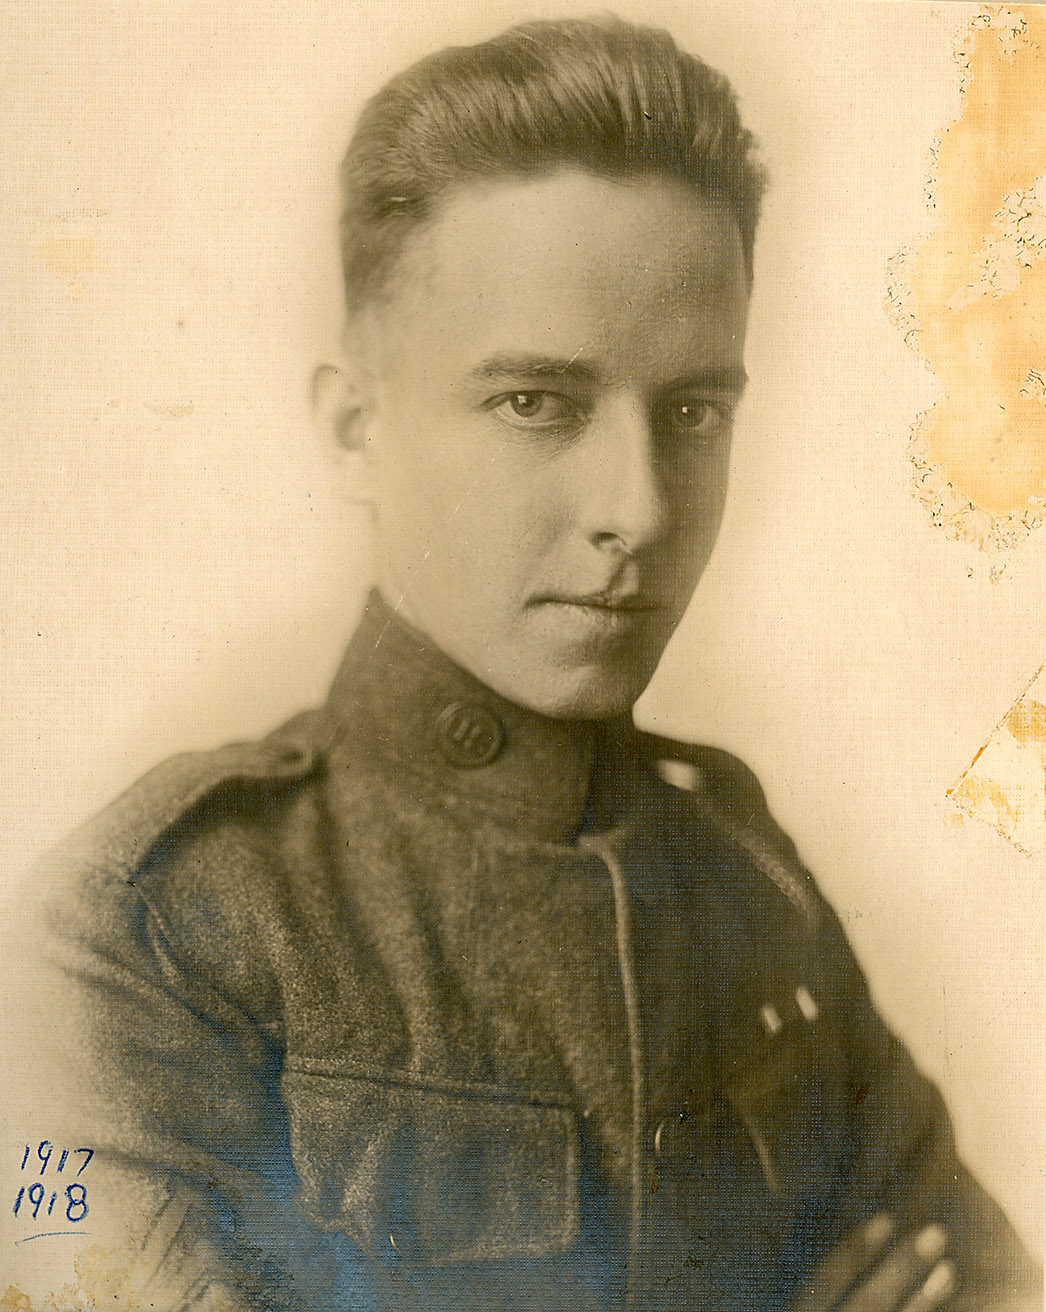 Depiction of Roswell A. Calin in uniform, 1918